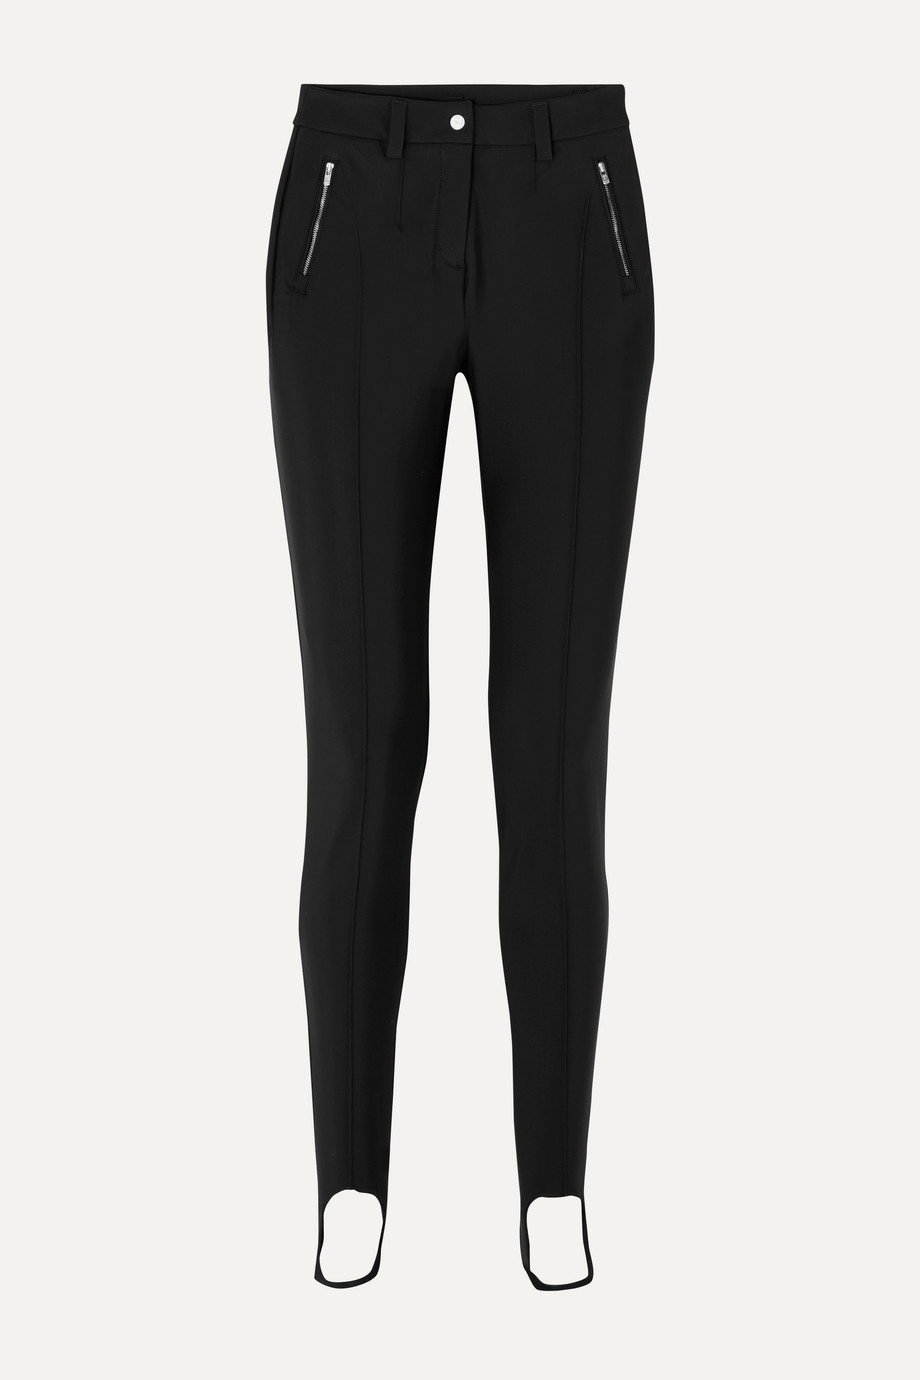 Fusalp Black Ski Stirrup Trousers